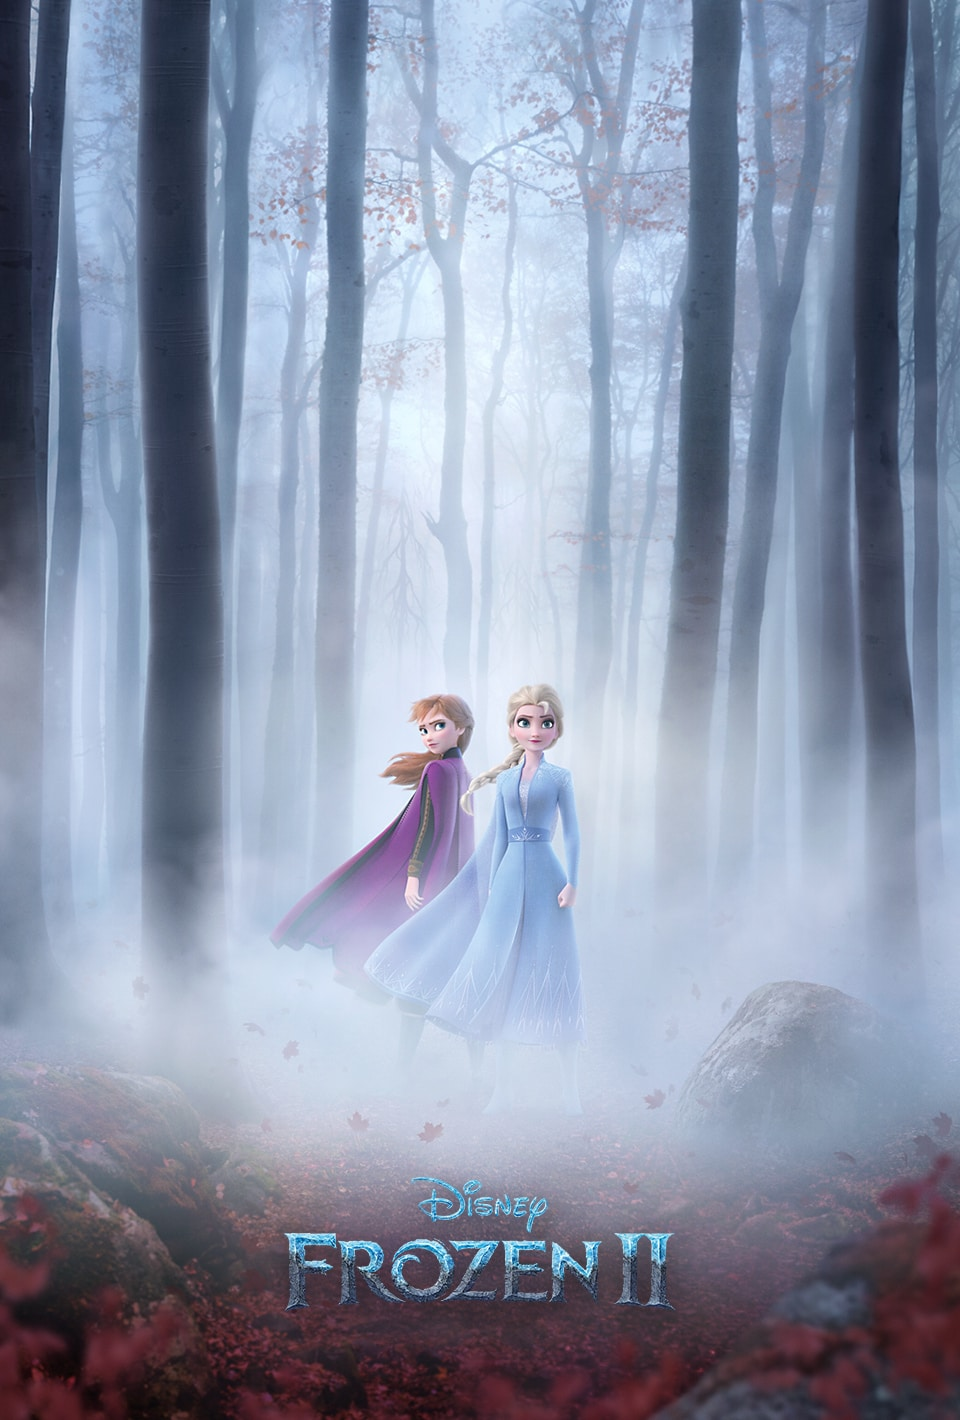 Frozen 2 Poster with a snowflake